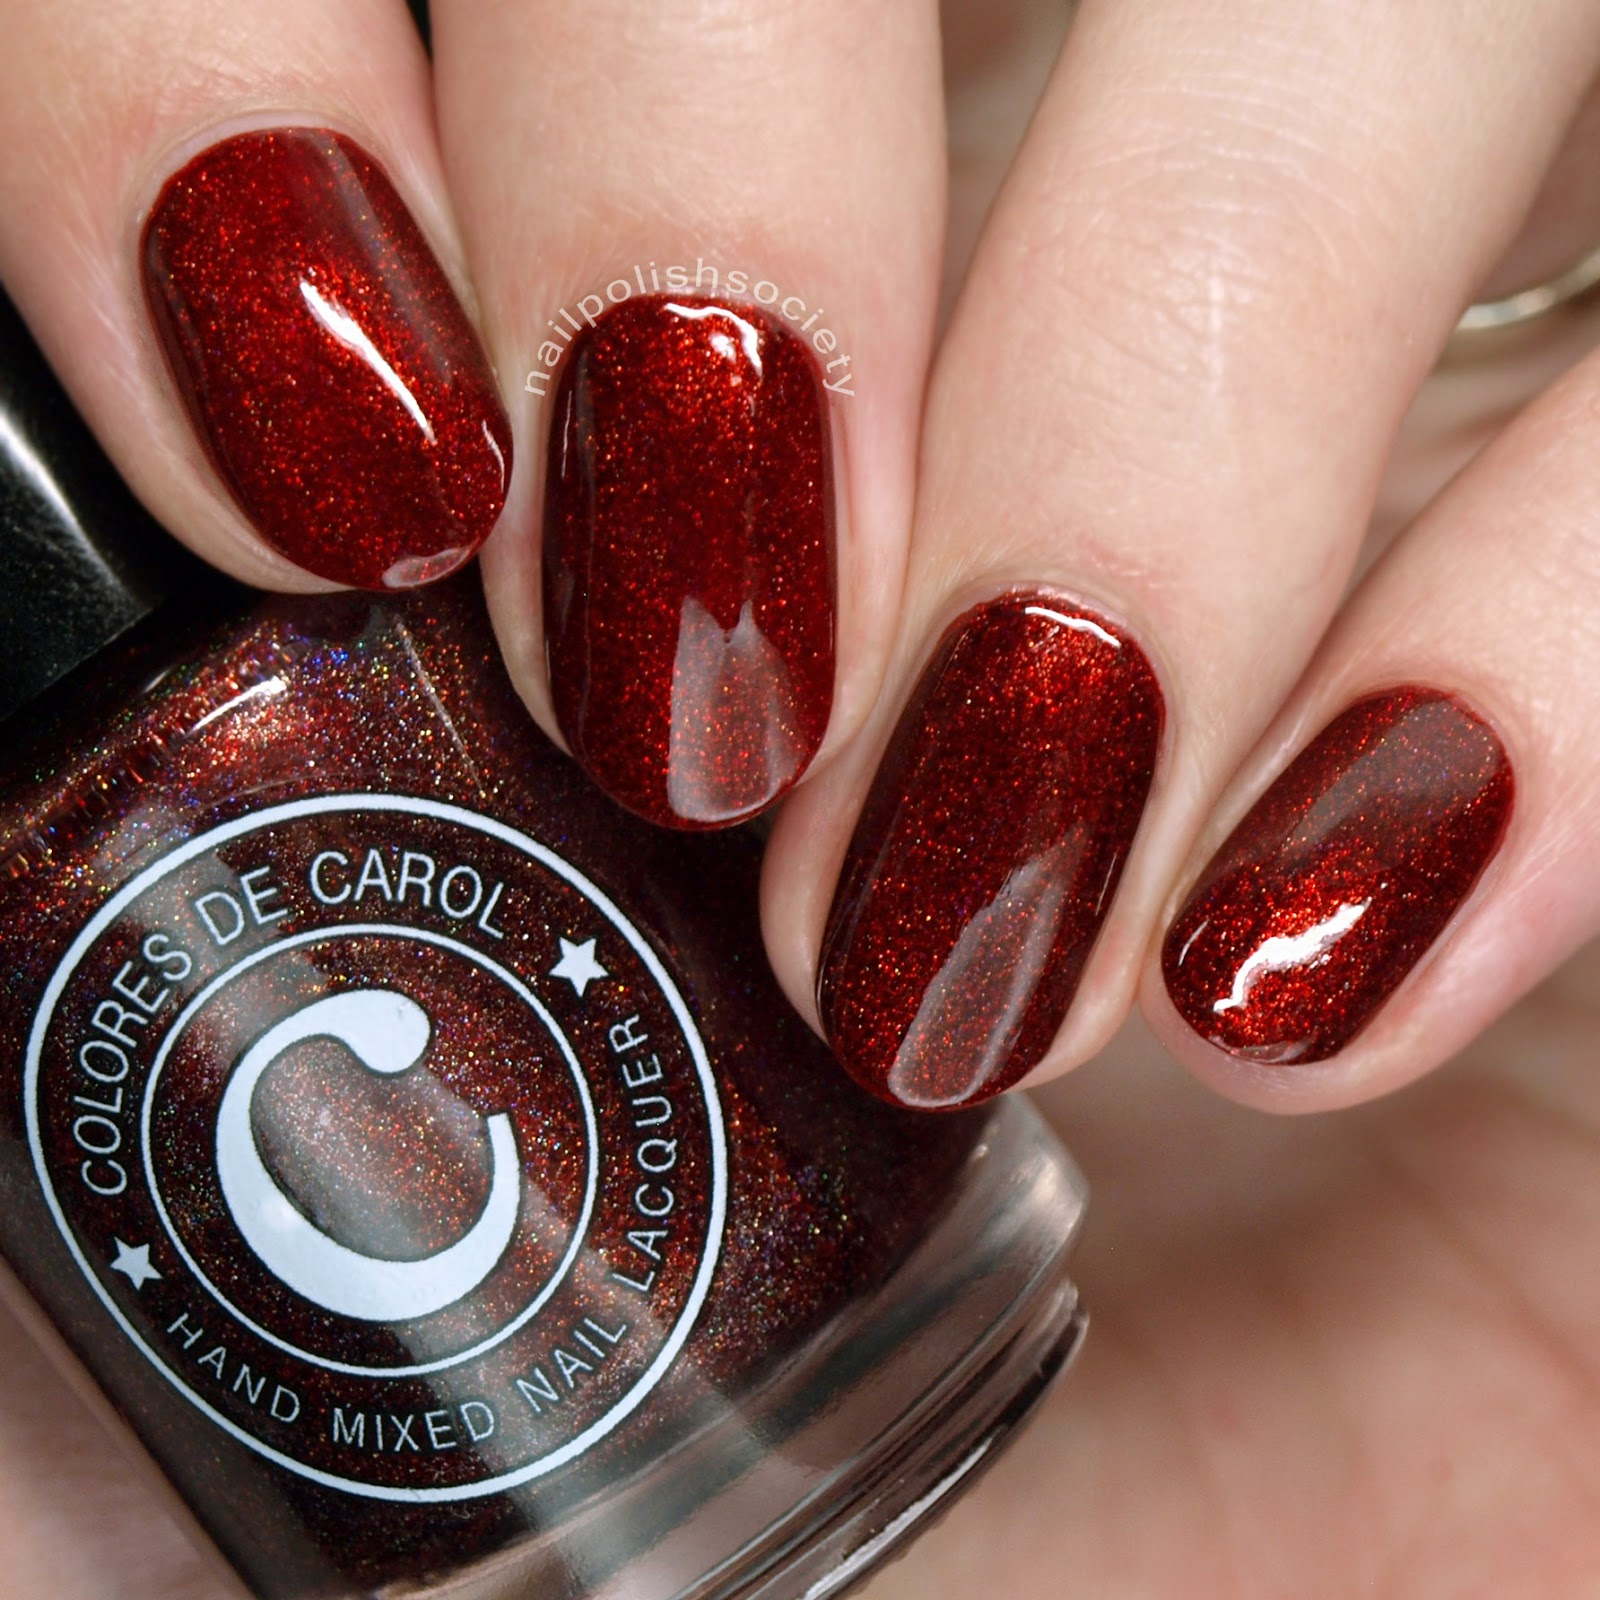 Nail Polish Society: Colores de Carol Goosebumps (Halloween 2017 ...